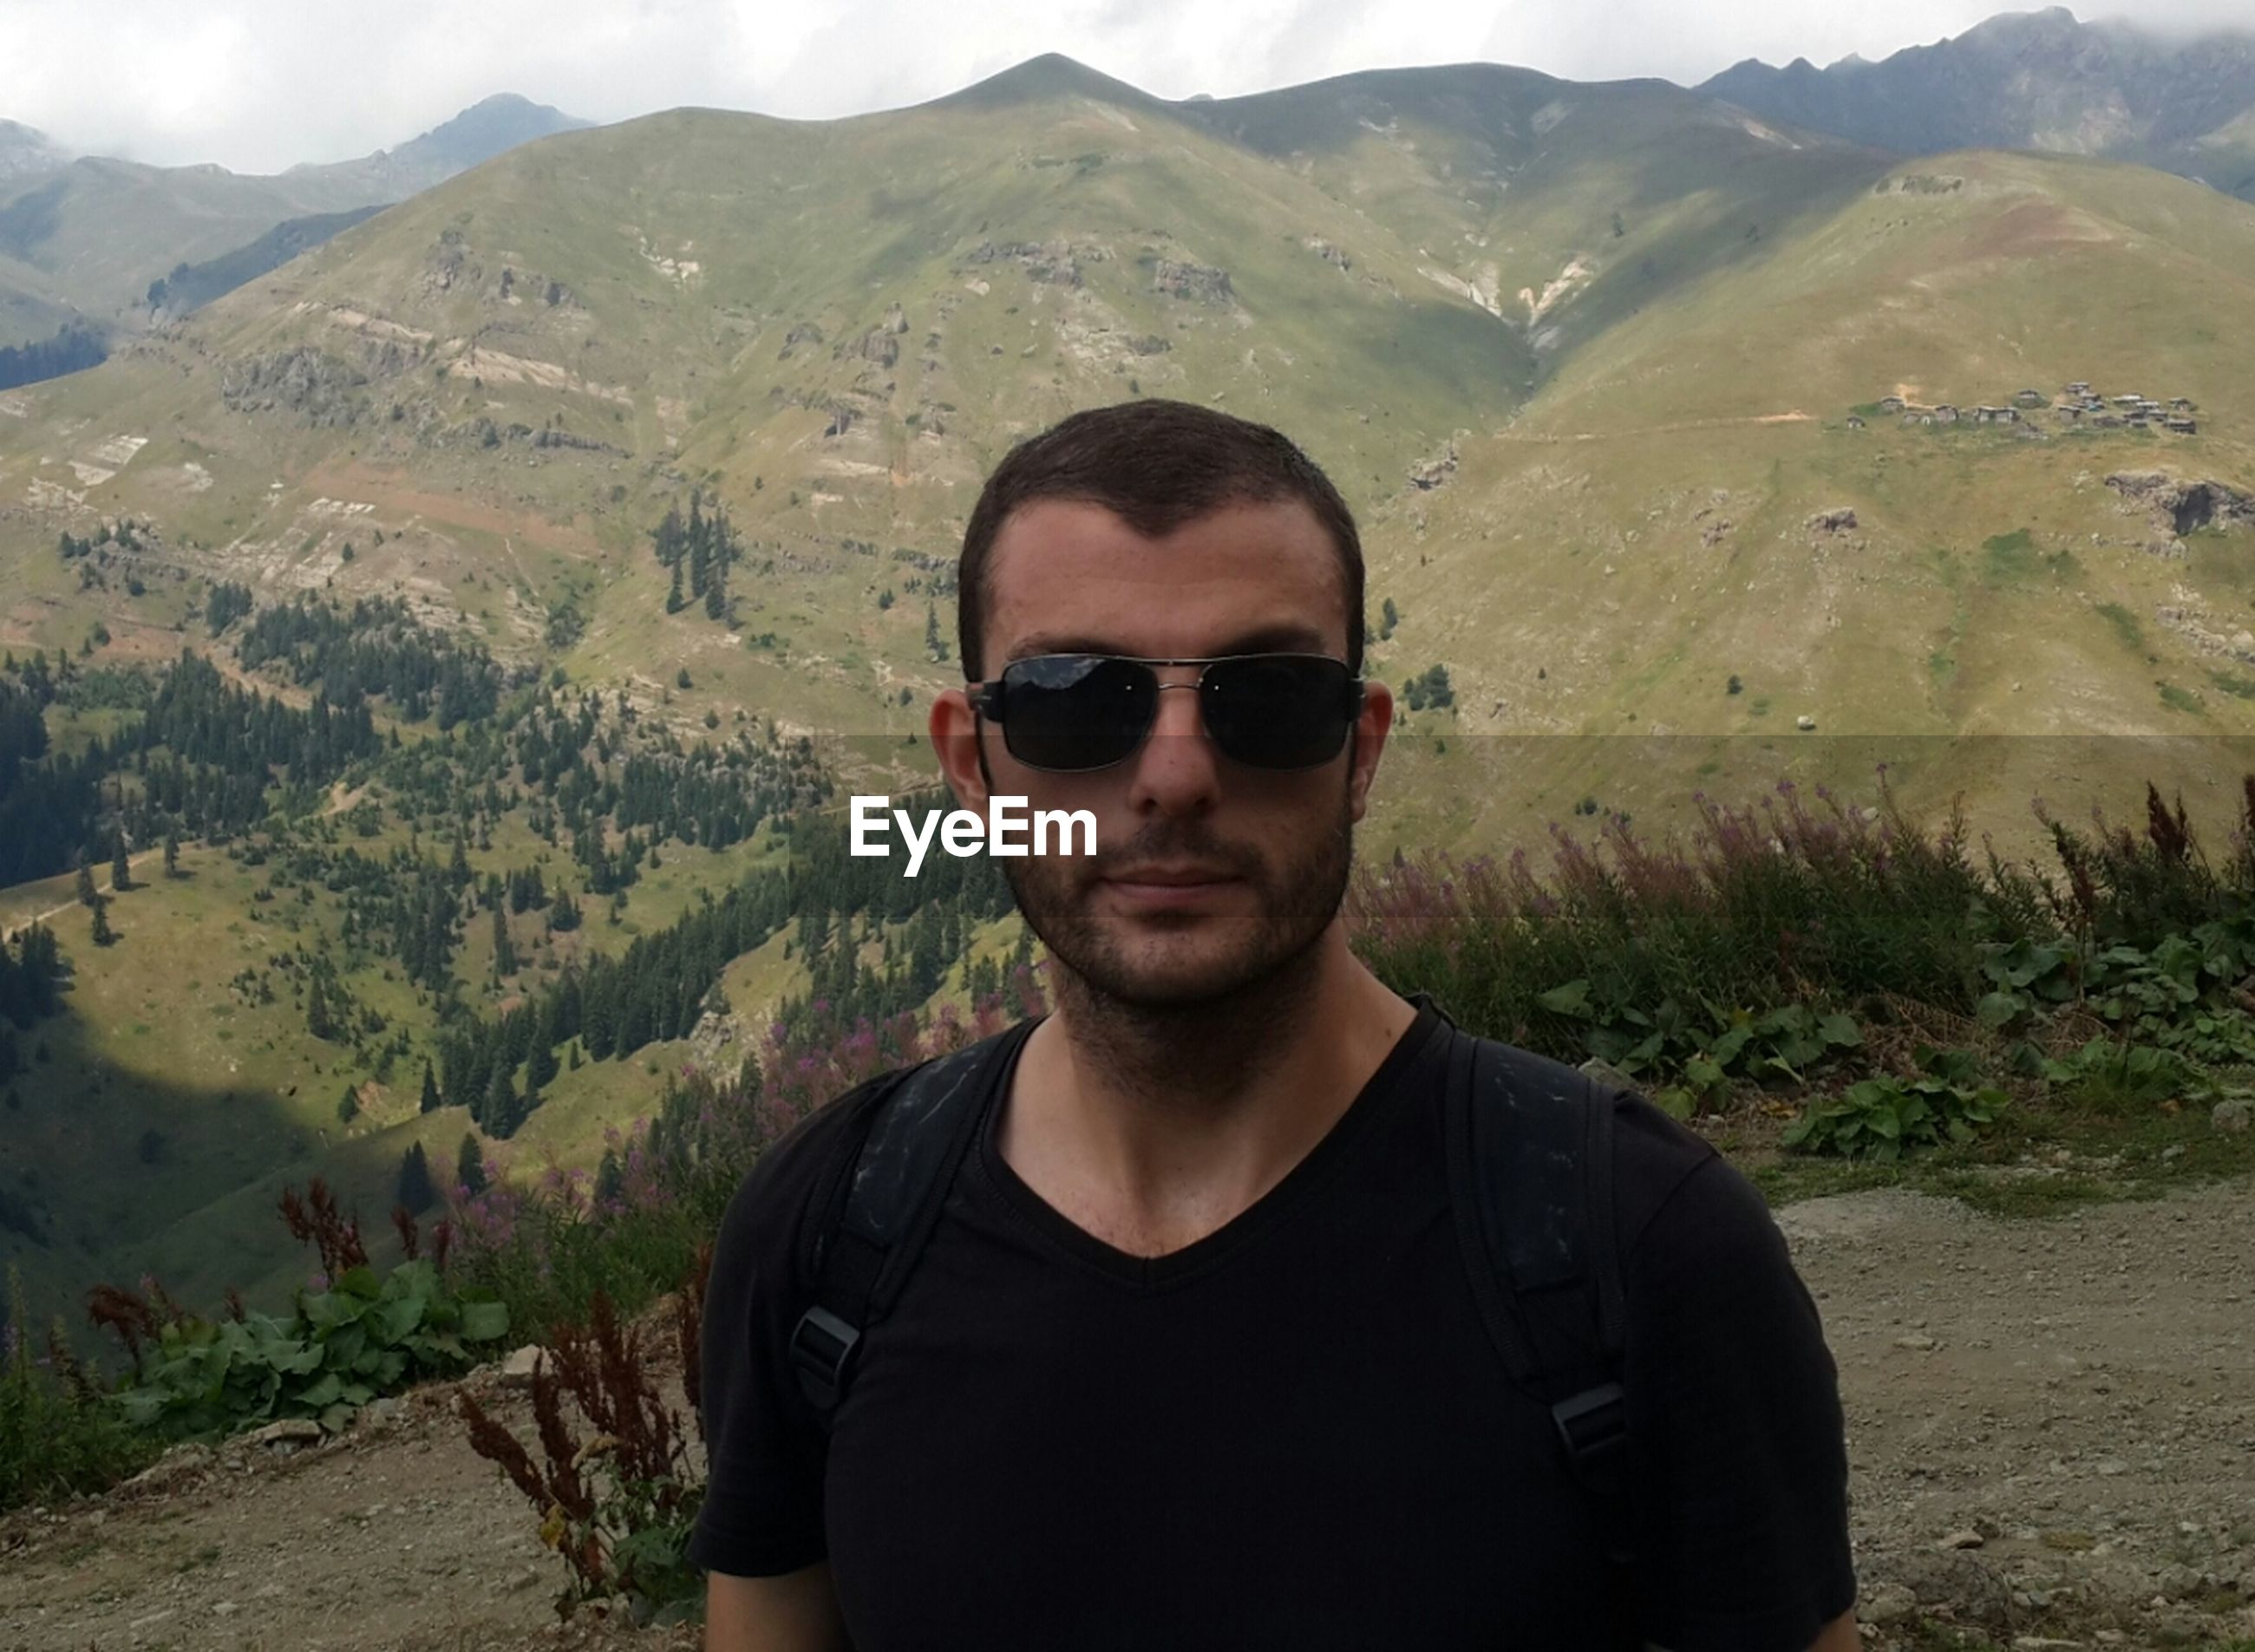 mountain, young adult, portrait, lifestyles, looking at camera, young men, person, leisure activity, casual clothing, mountain range, landscape, front view, sunglasses, tranquility, smiling, scenics, beauty in nature, nature